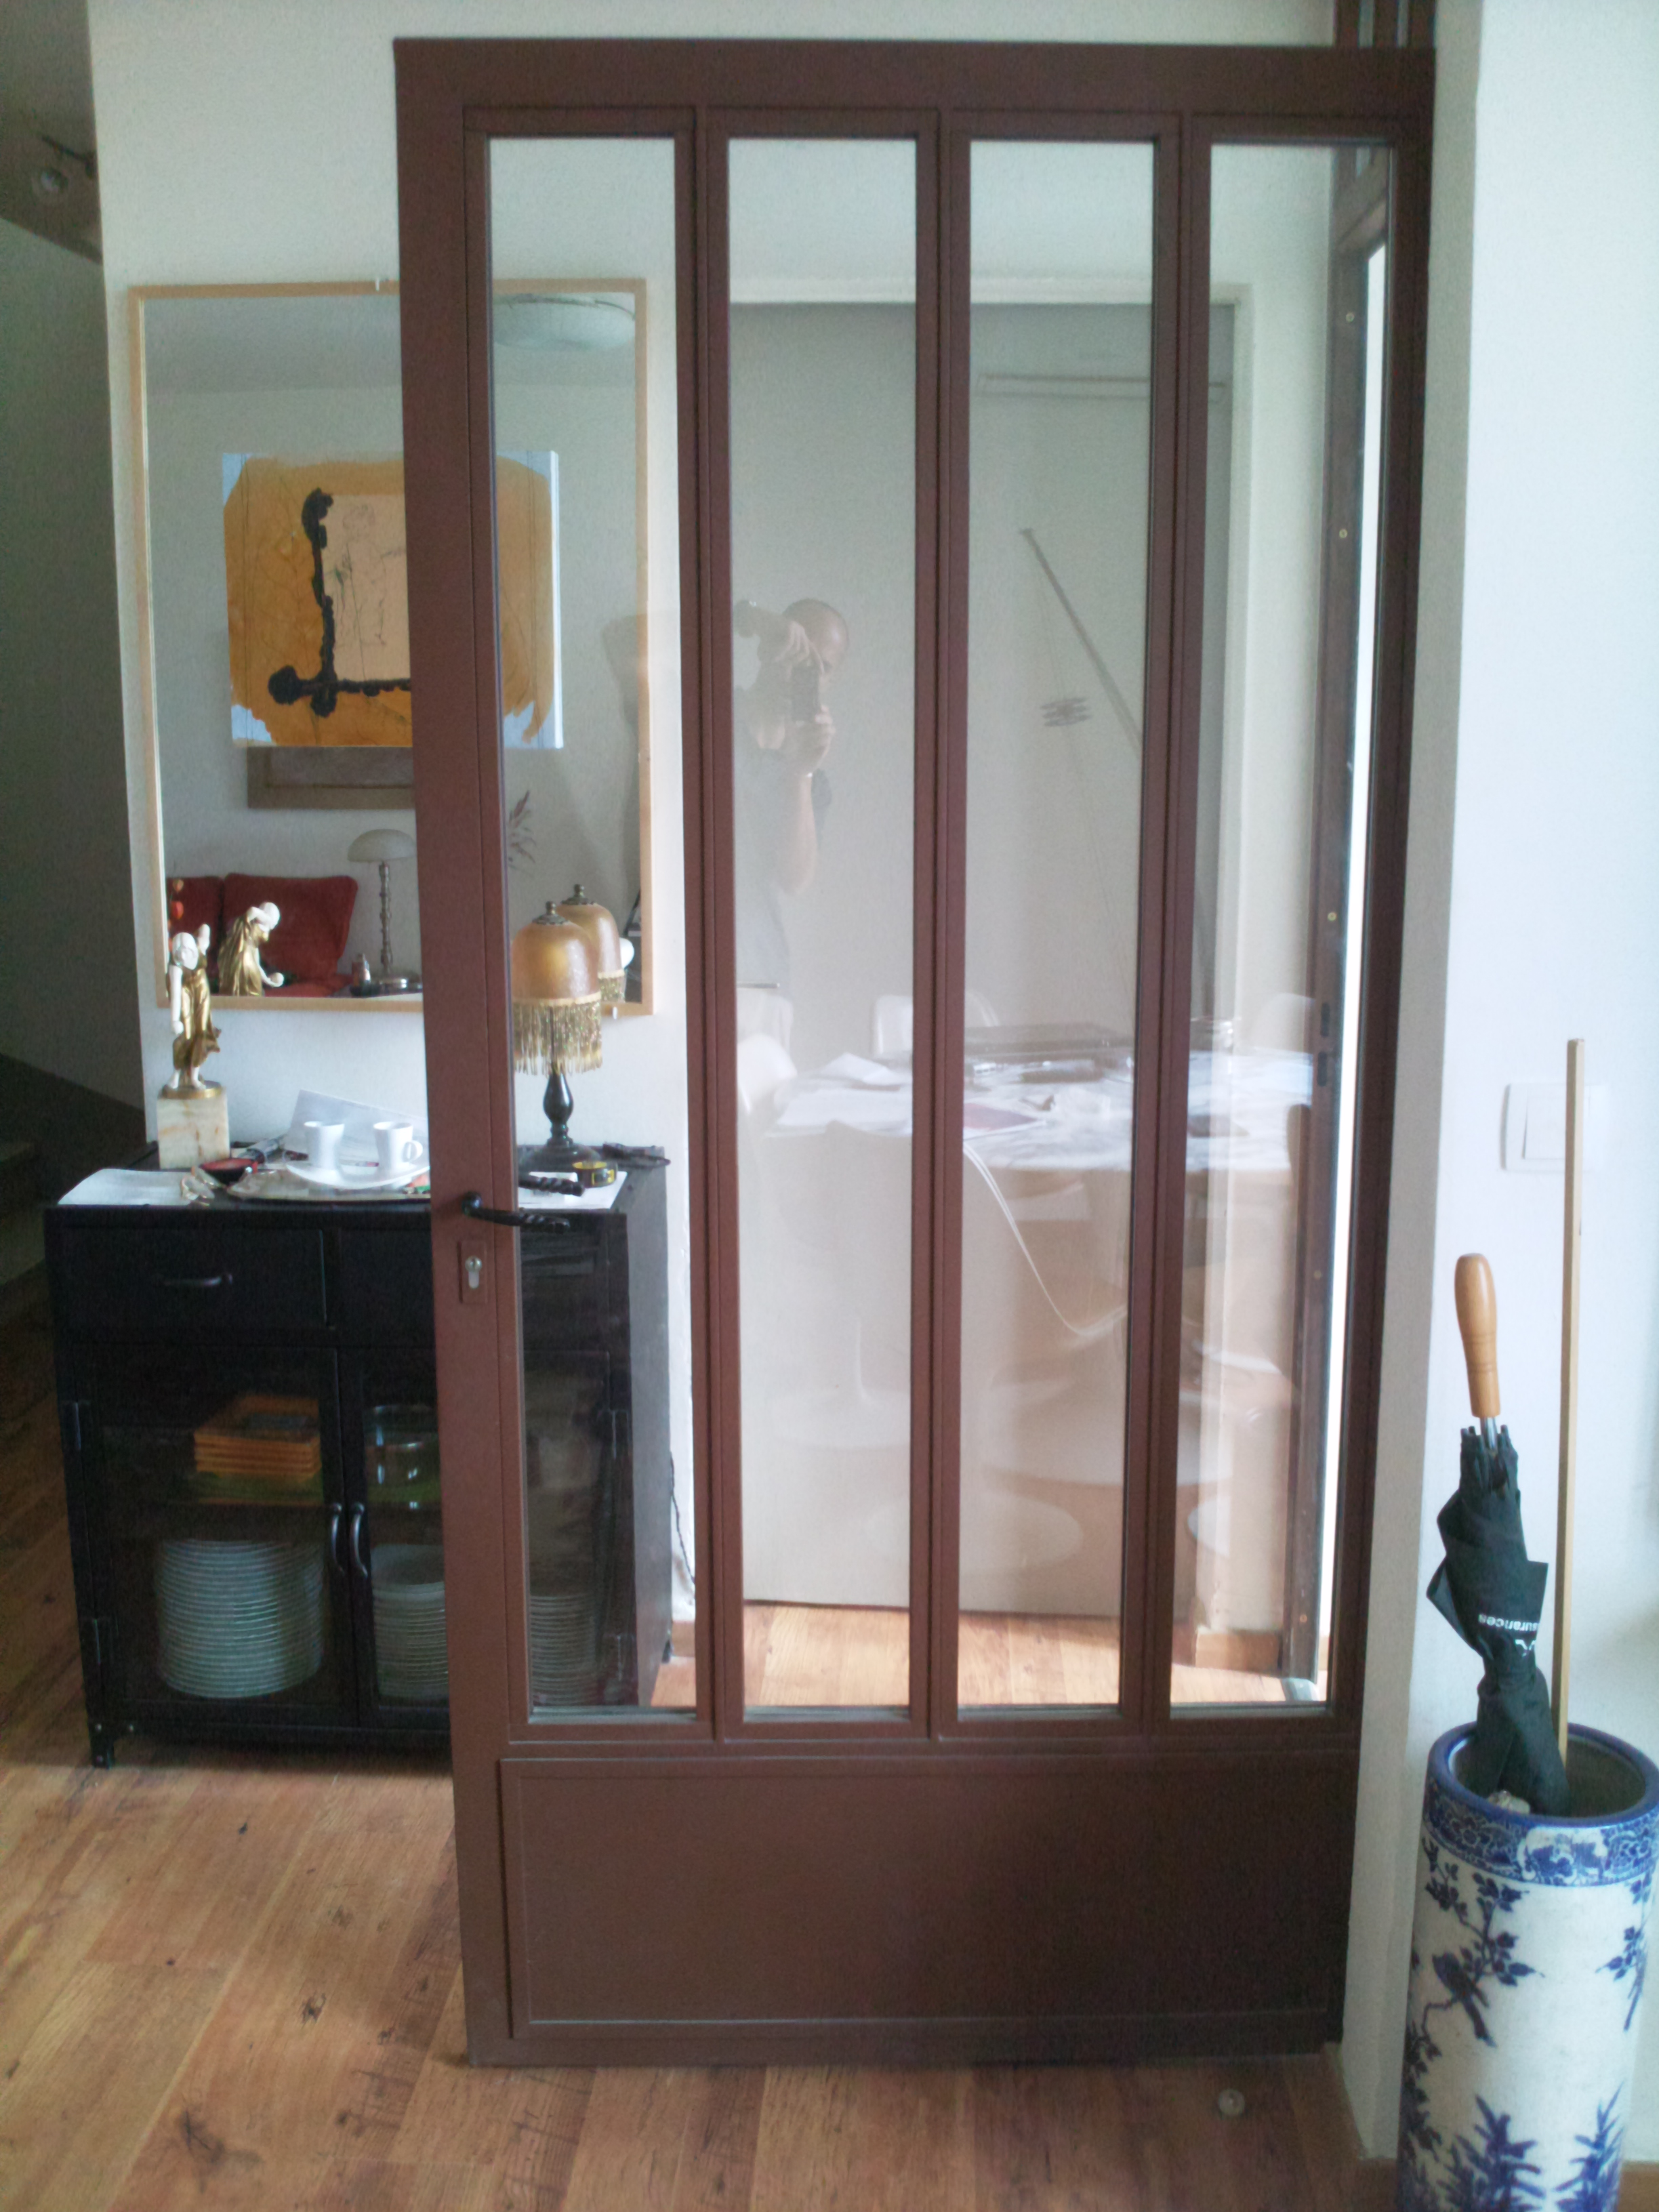 Portes safm localicsol for Porte accordeon bois interieur